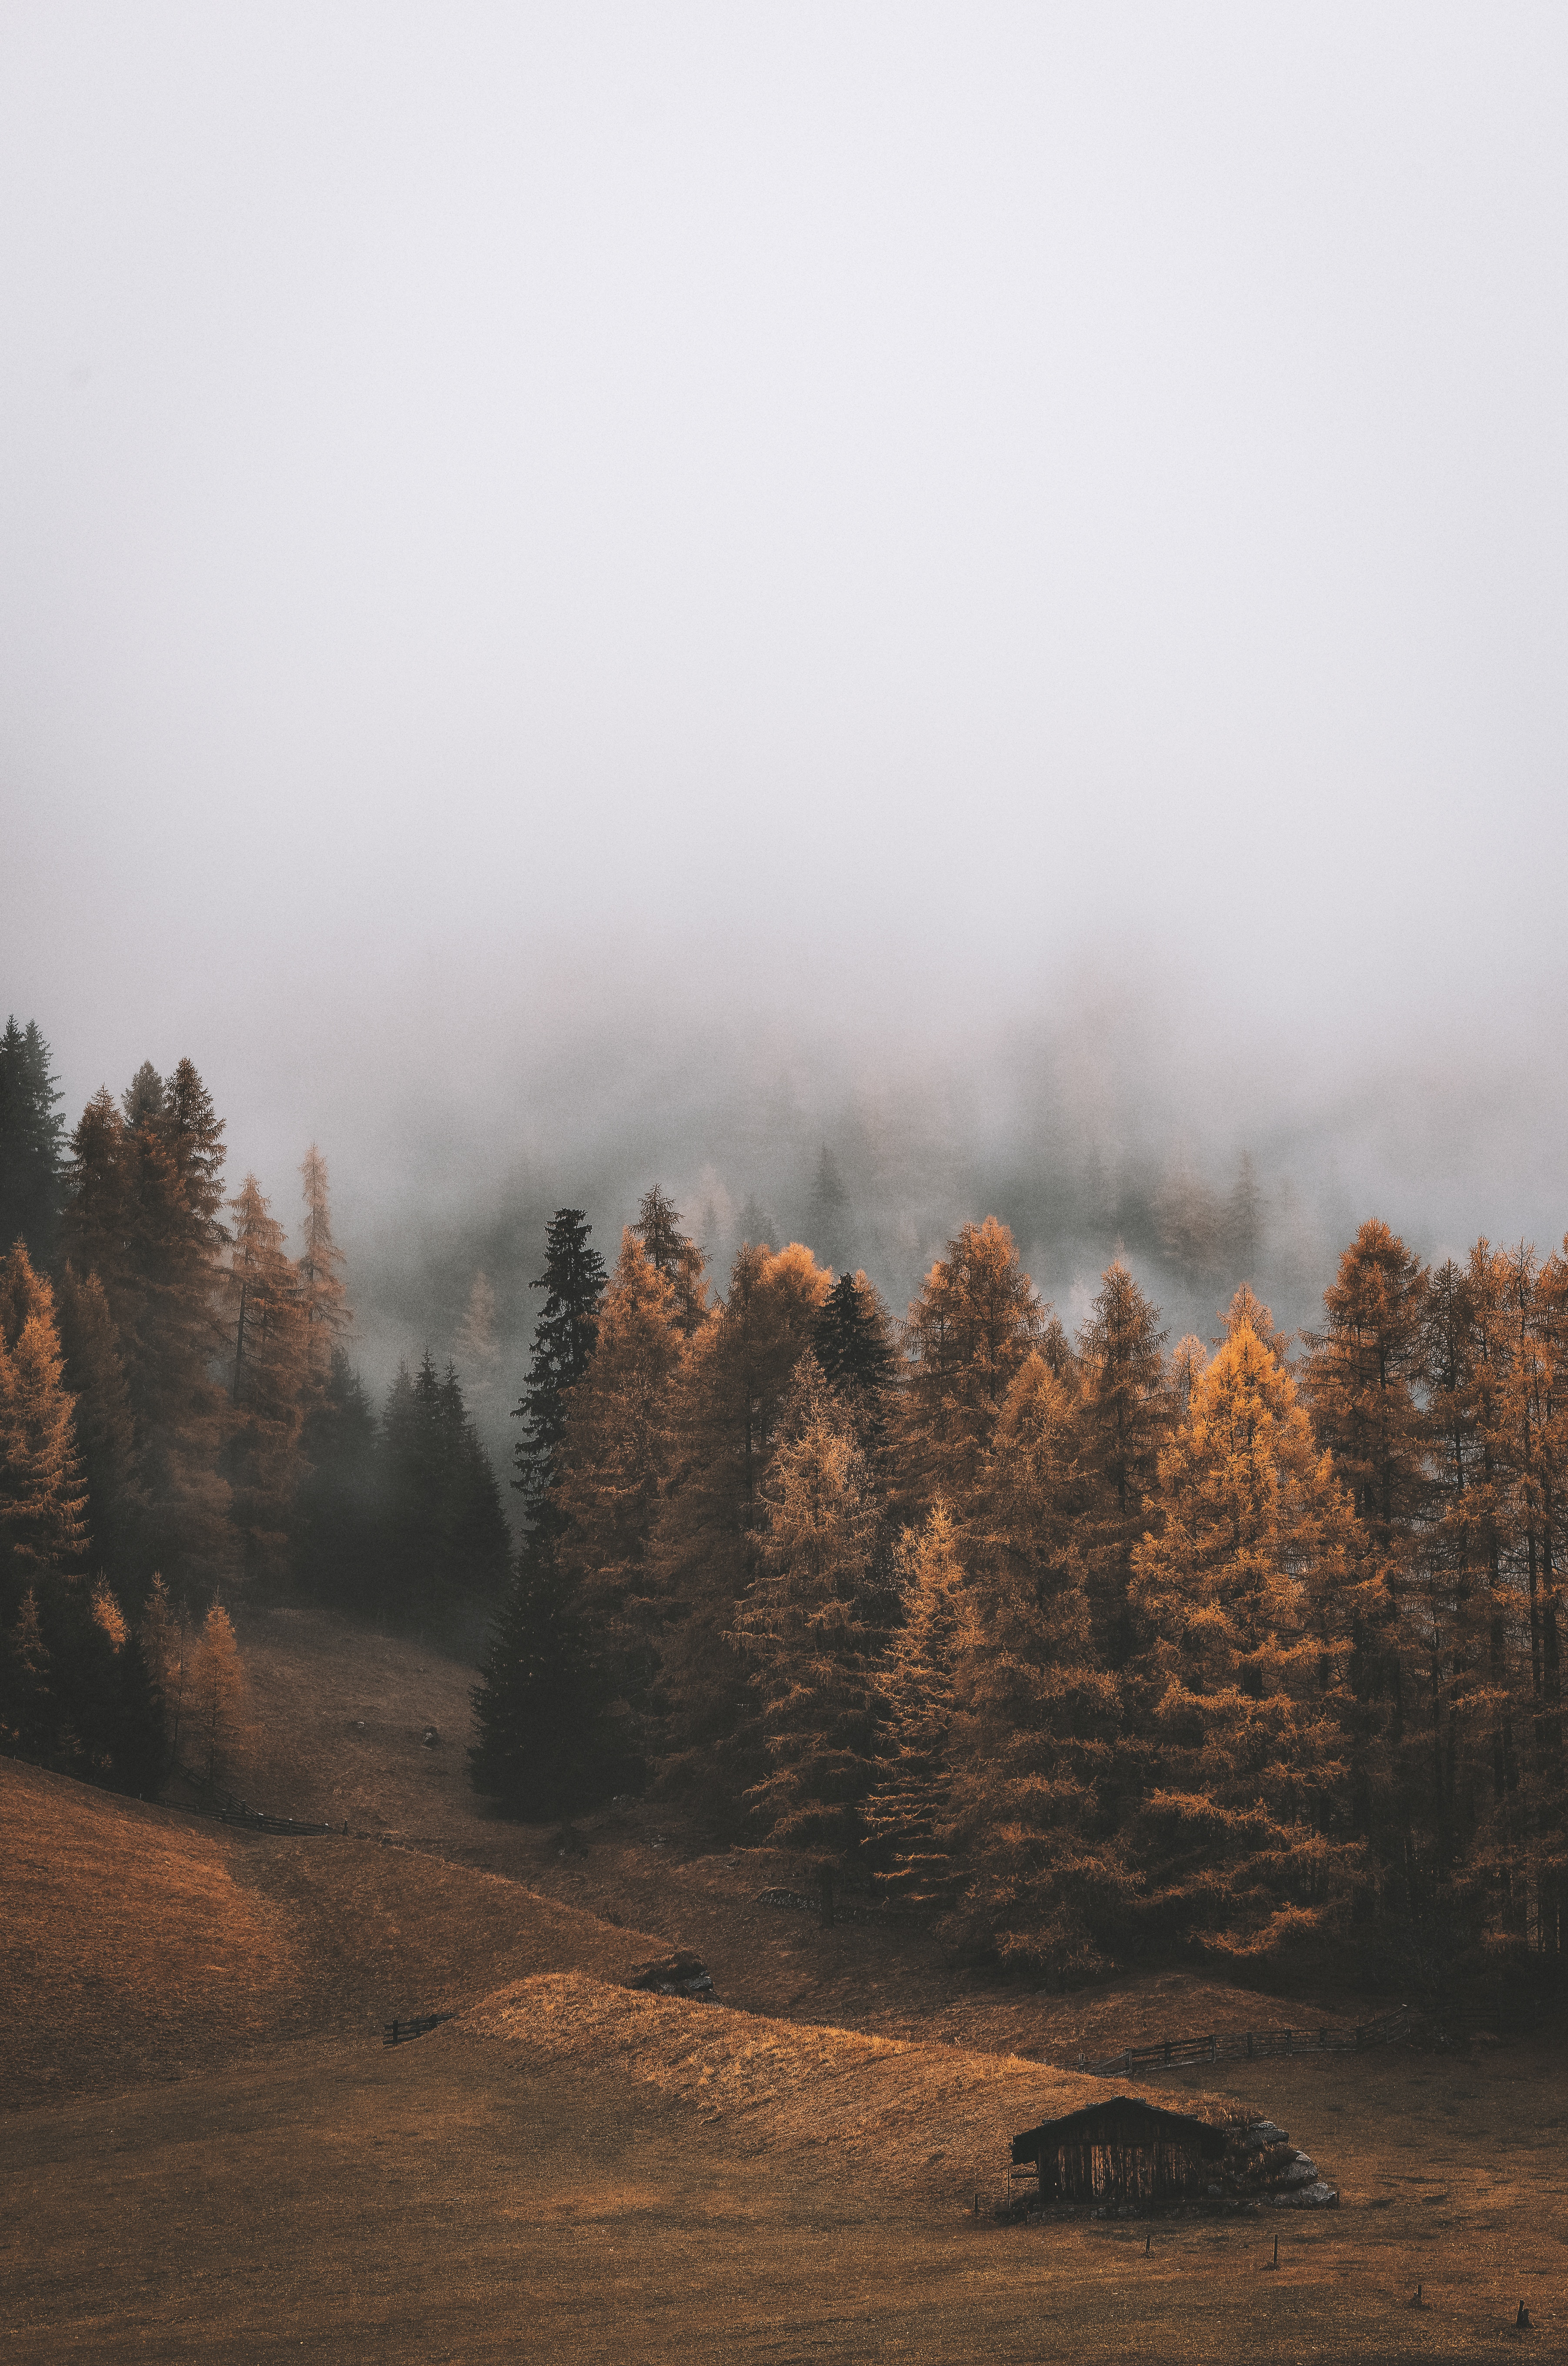 58744 download wallpaper Nature, Forest, Fog, Trees, Autumn, Landscape screensavers and pictures for free